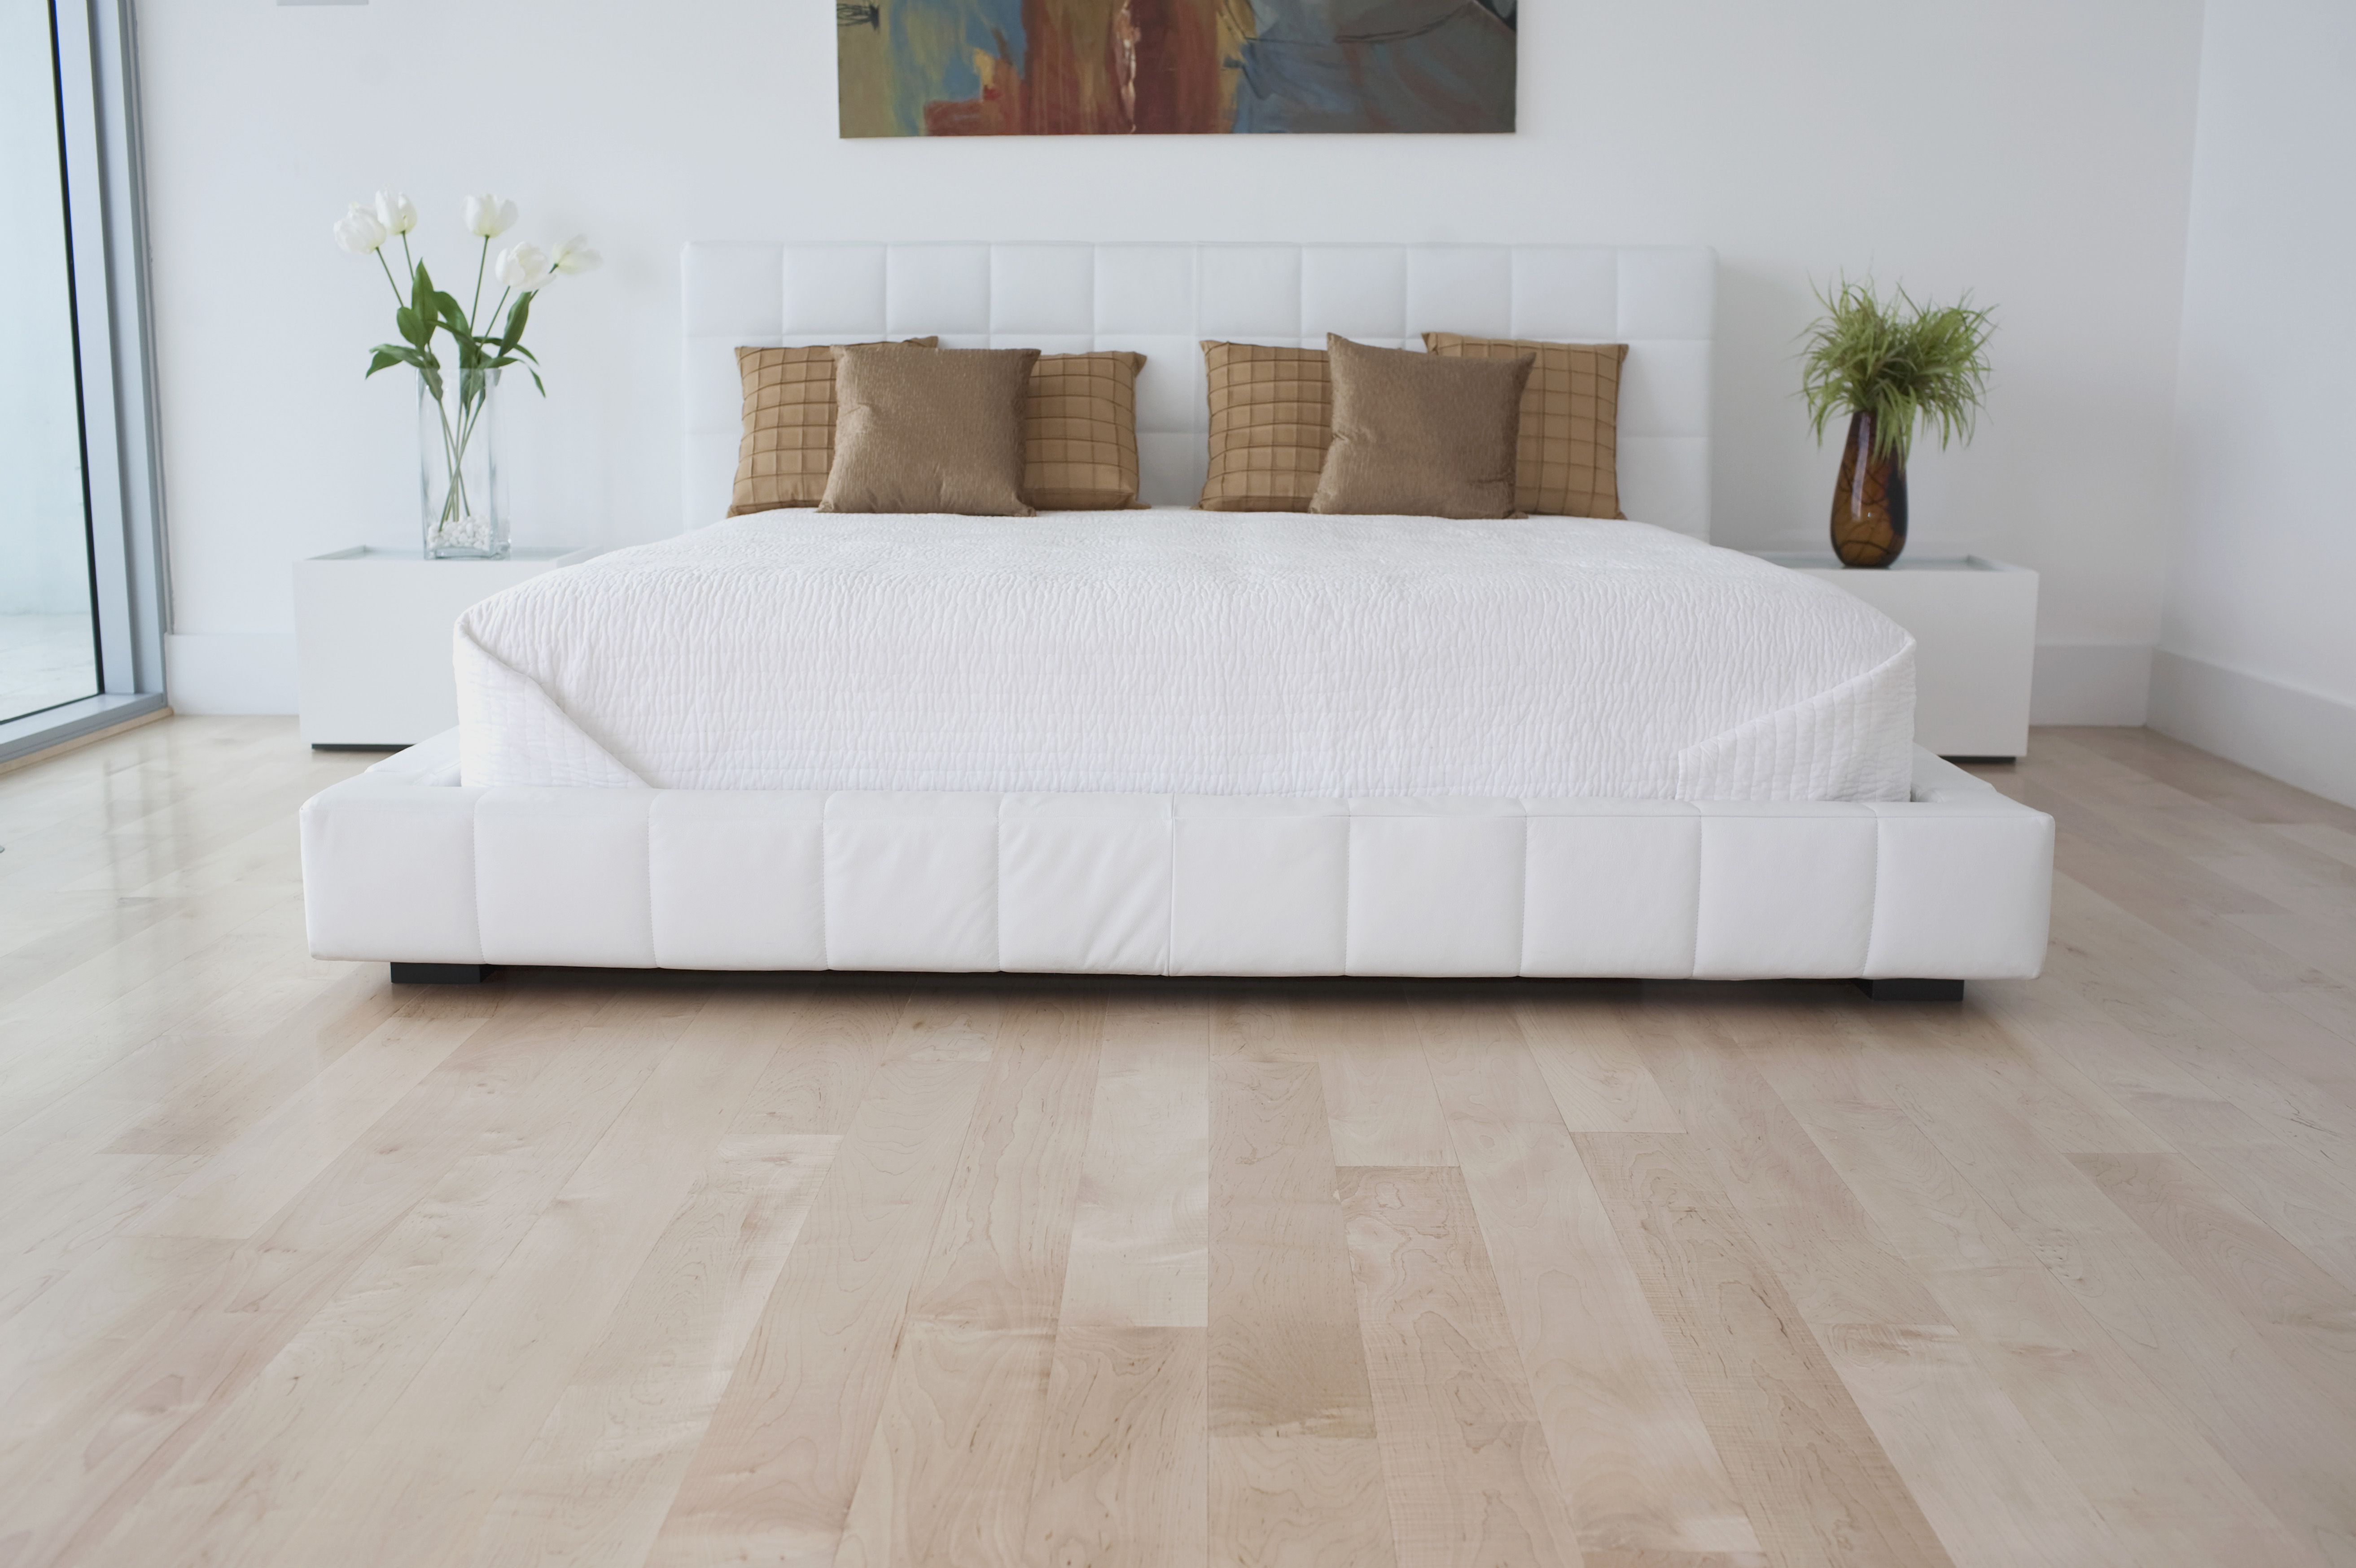 hgtv hardwood flooring ideas of 5 best bedroom flooring materials throughout interiors of a bedroom 126171674 57be063d3df78cc16e3cc6cf